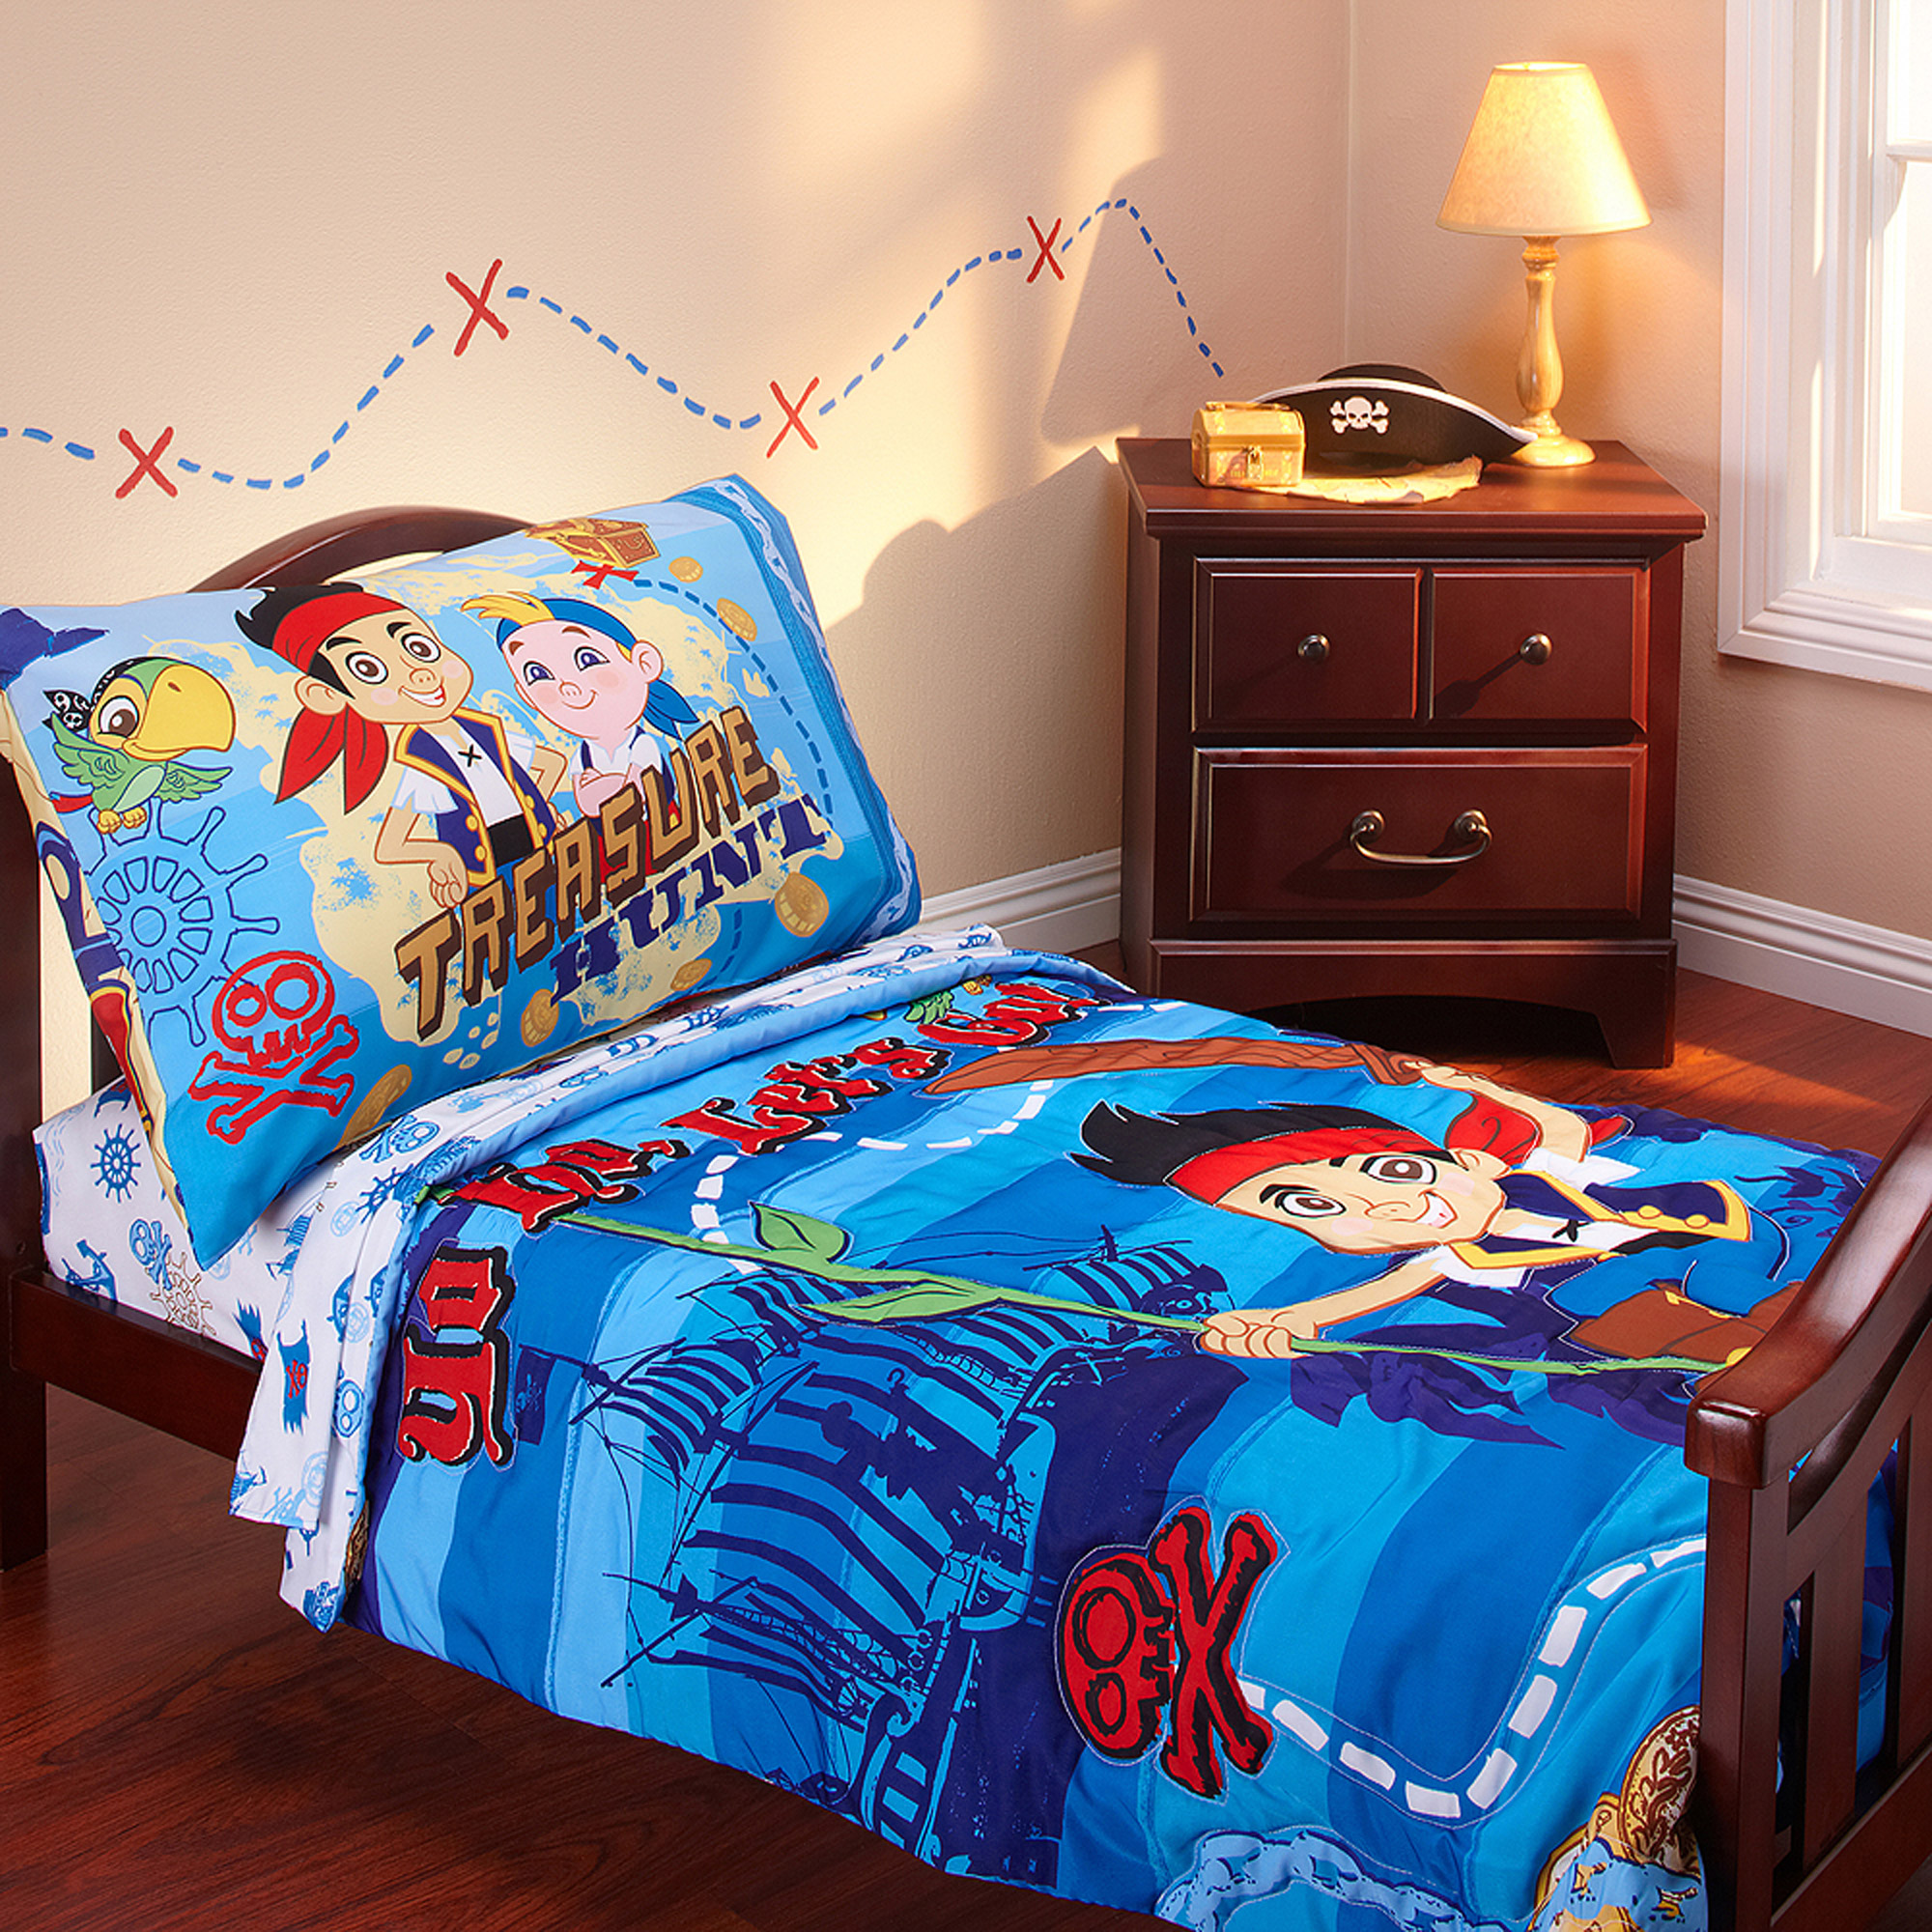 Disney - Jake & Neverland Pirates 3pc Toddler Bedding Set with BONUS Matching Pillow Case